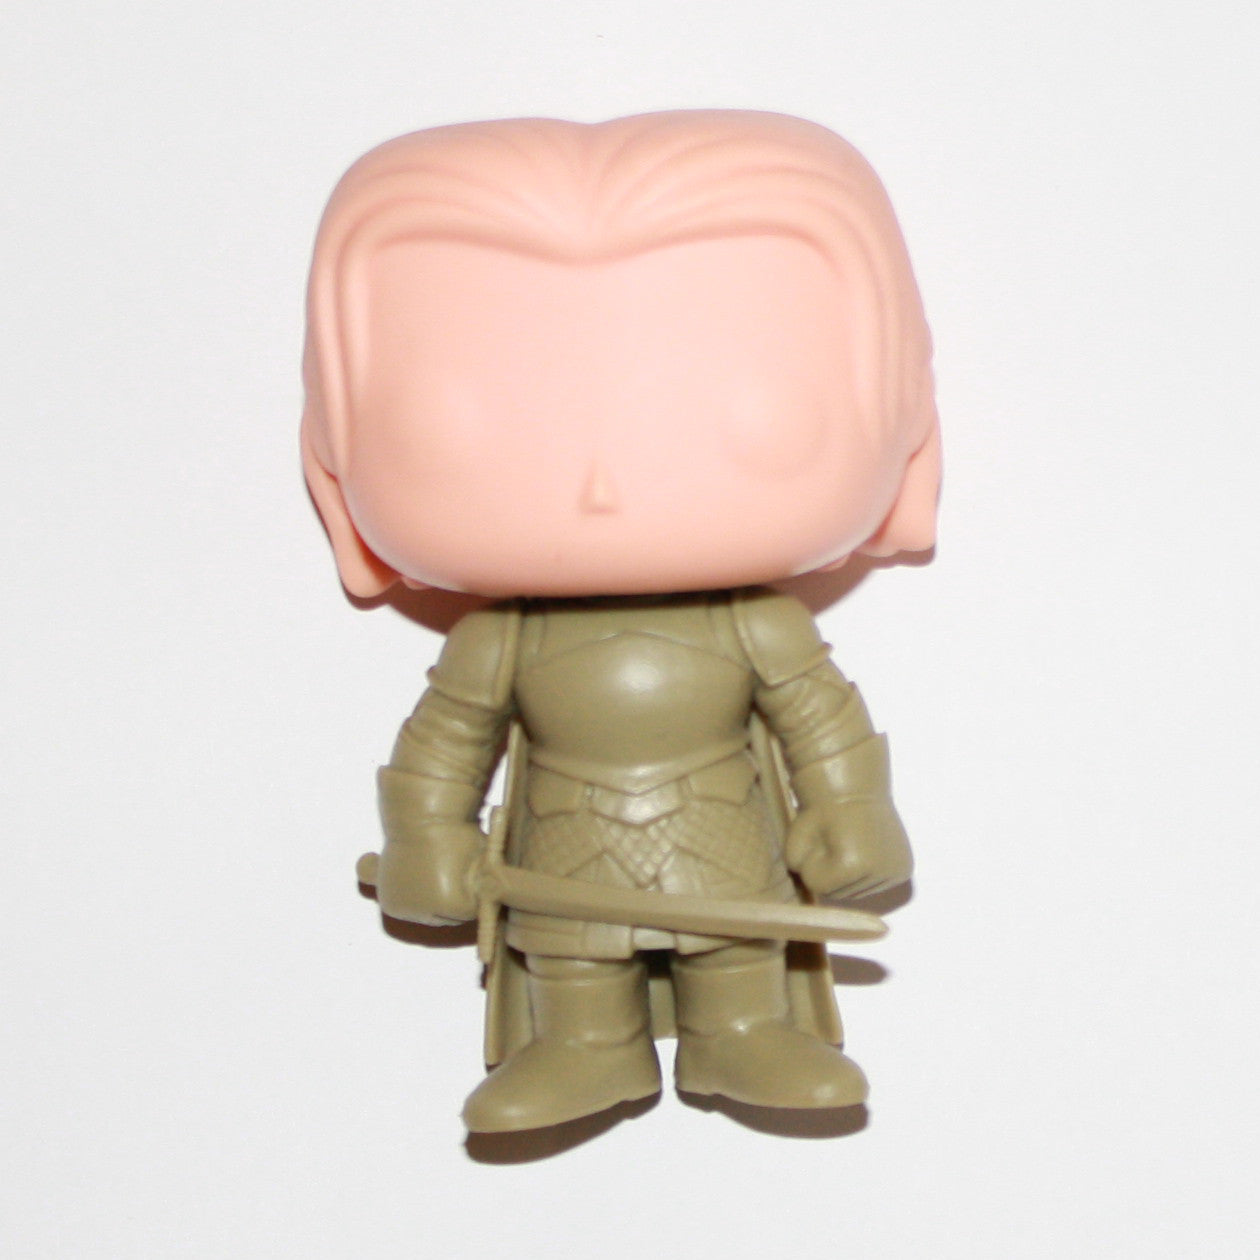 Jaime Lannister [Game of Thrones] Proto